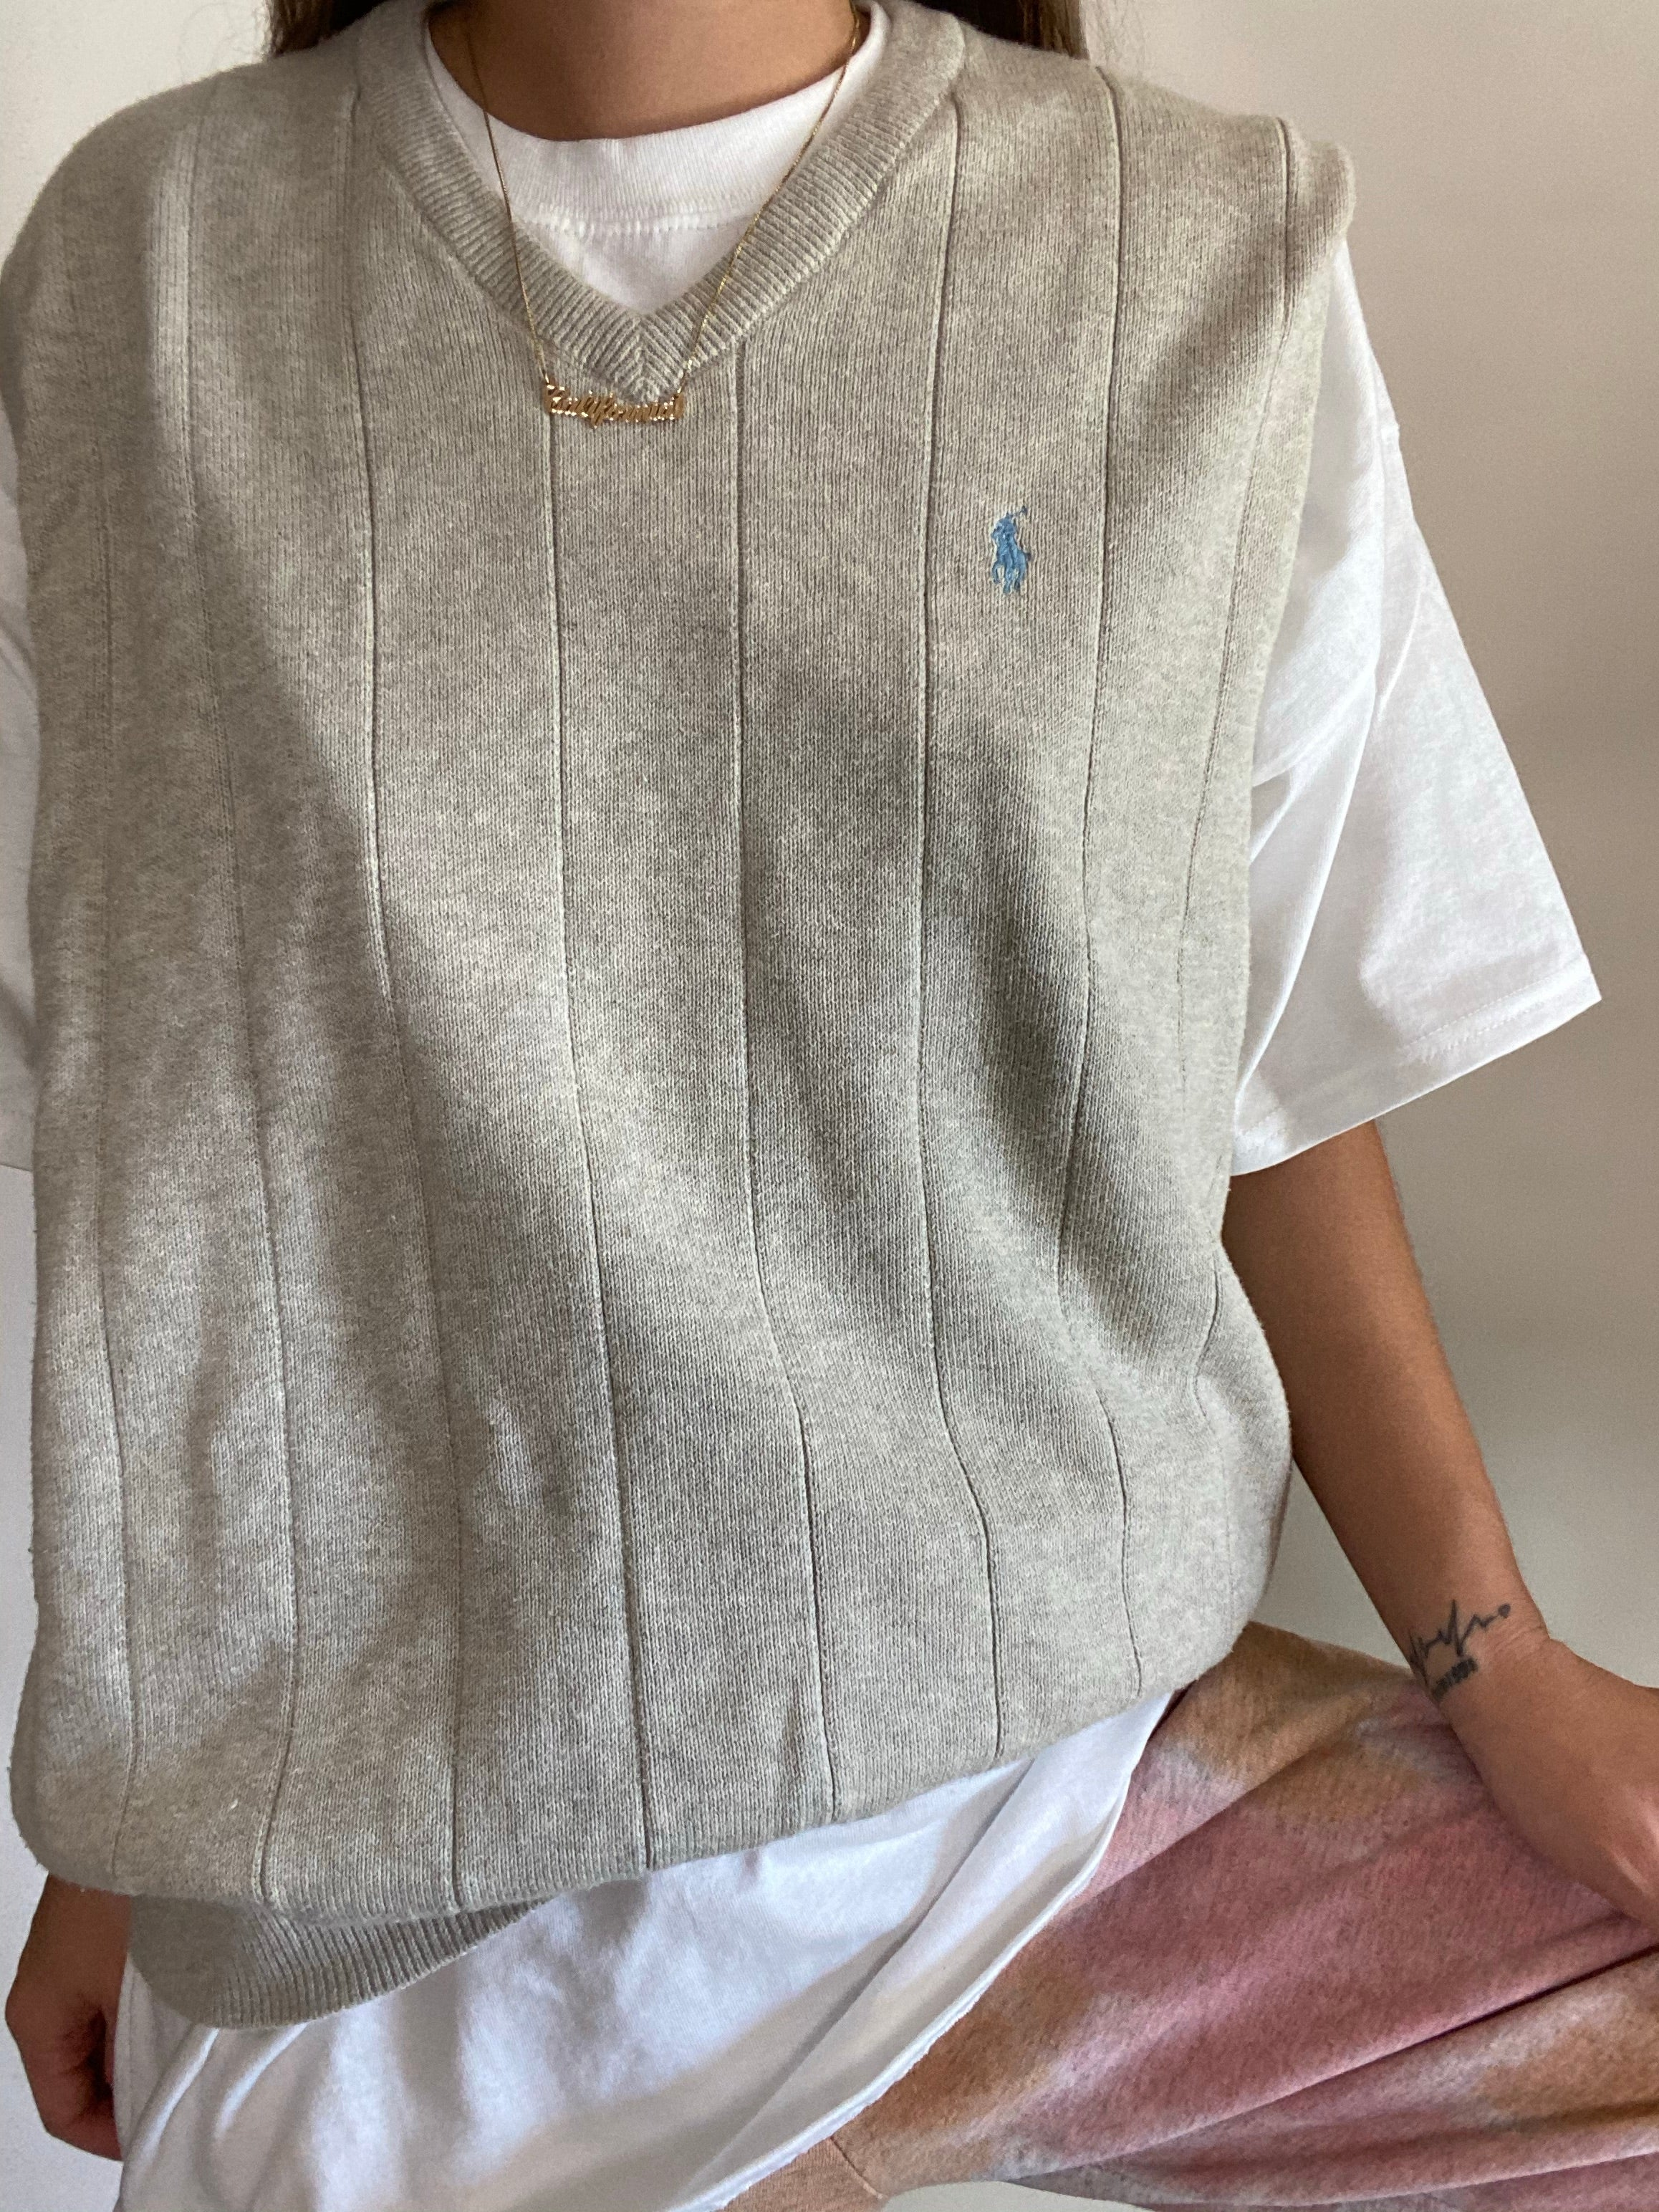 Vintage Polo sweater vest